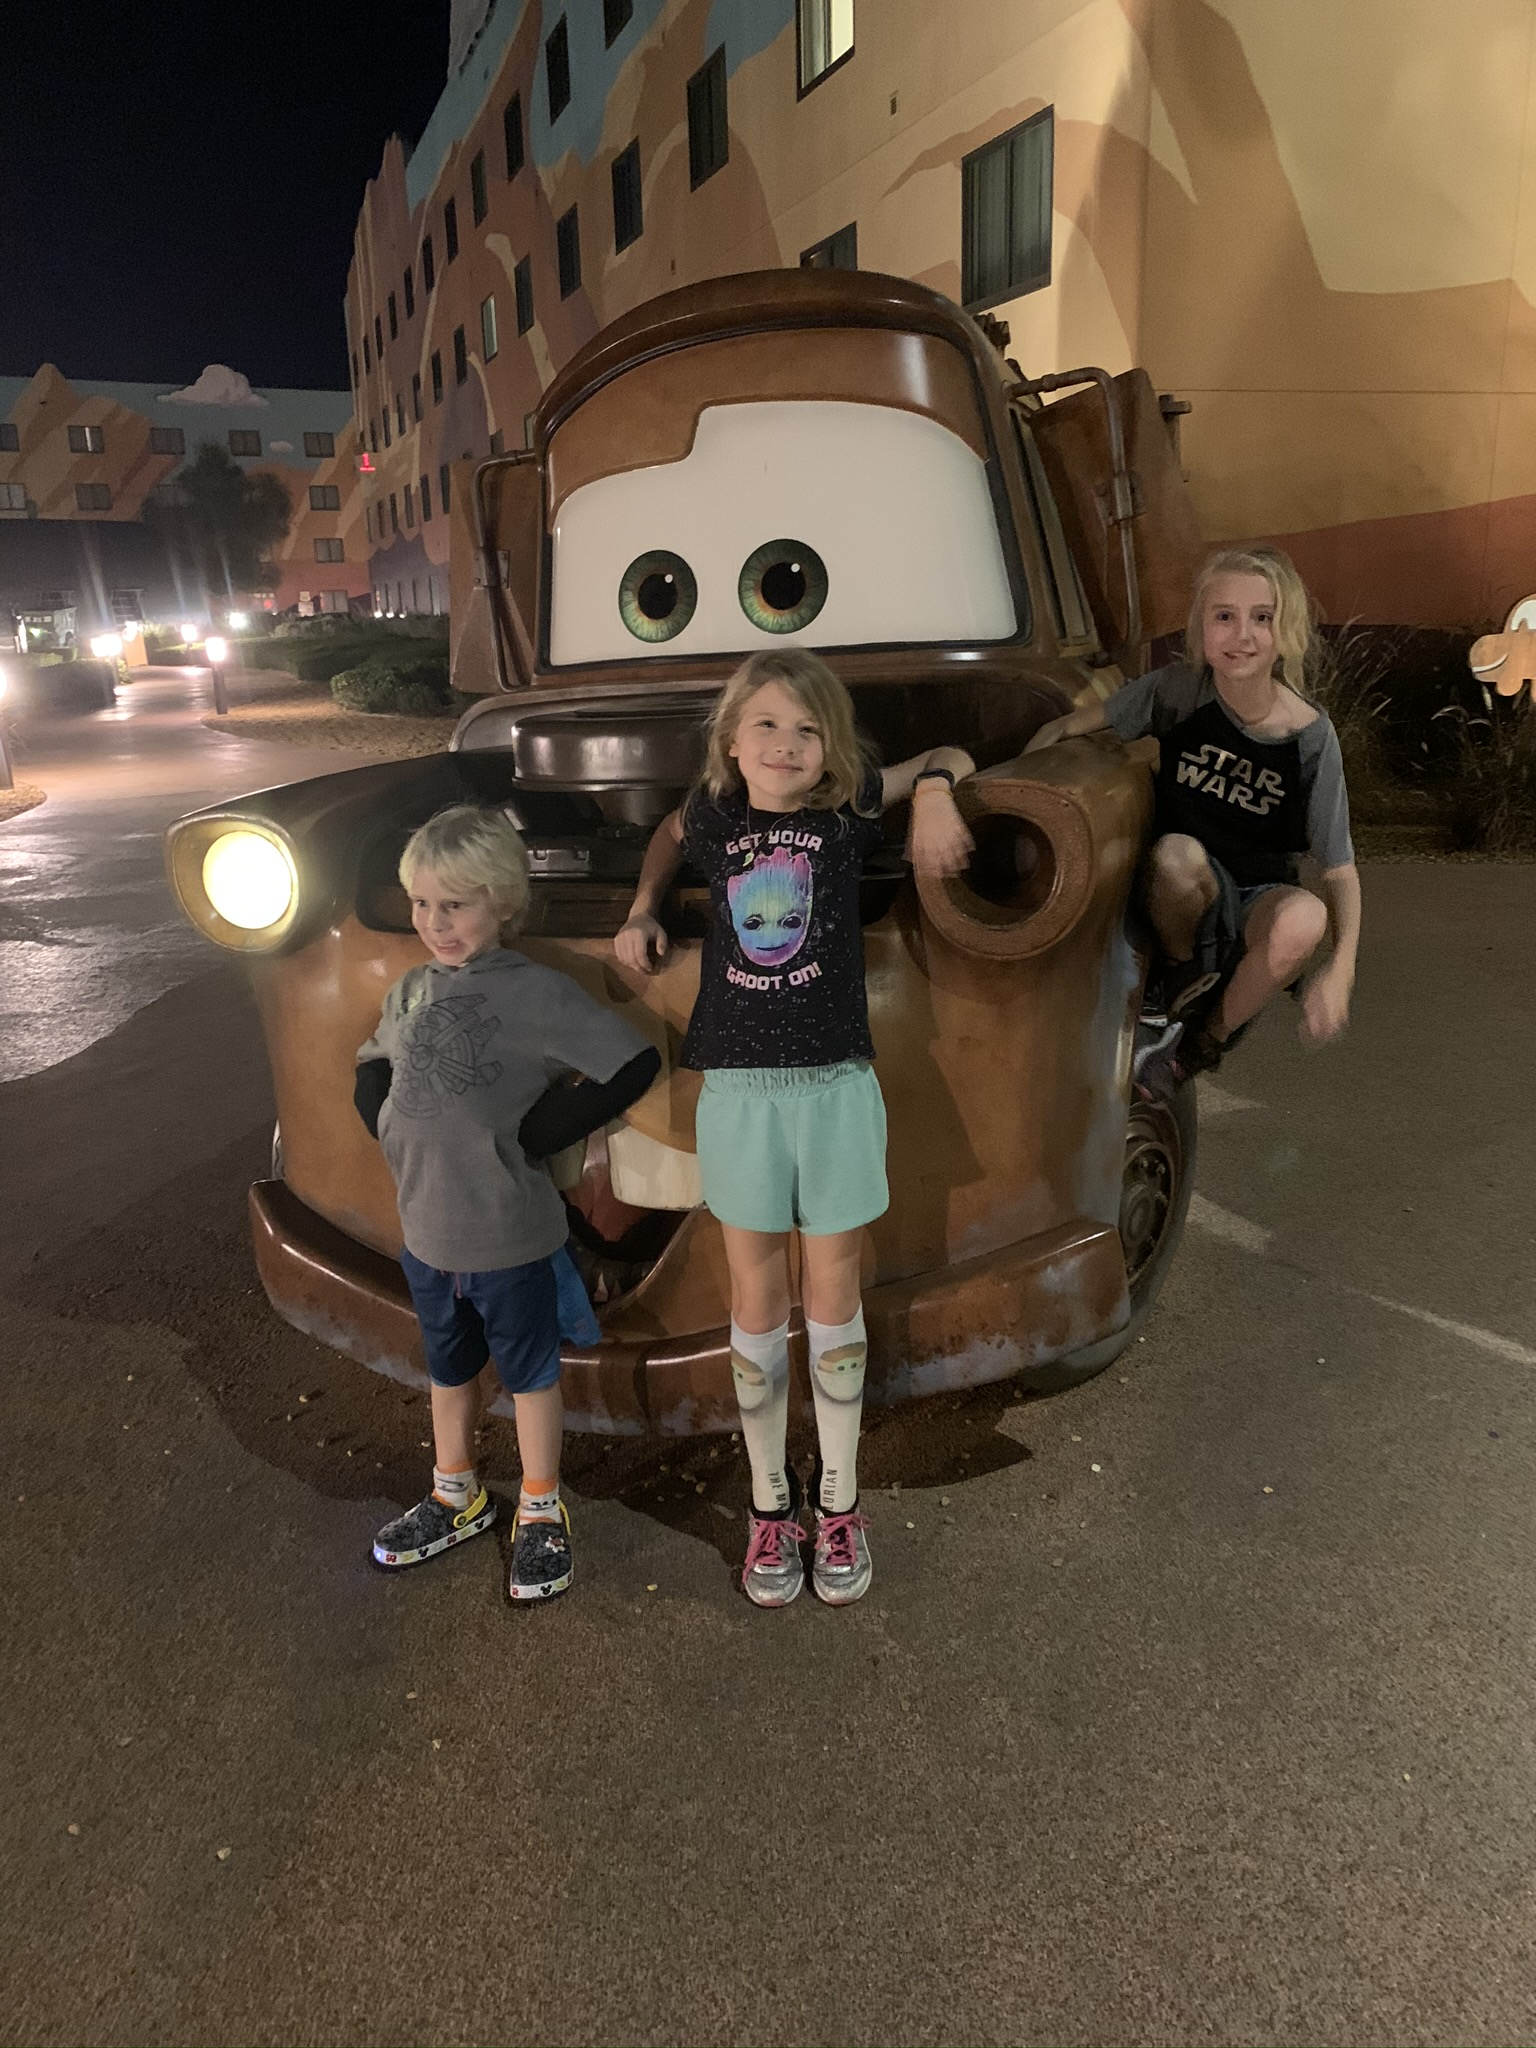 kids with Tow Mater of Cars at the Disney World Art of Animation Hotel